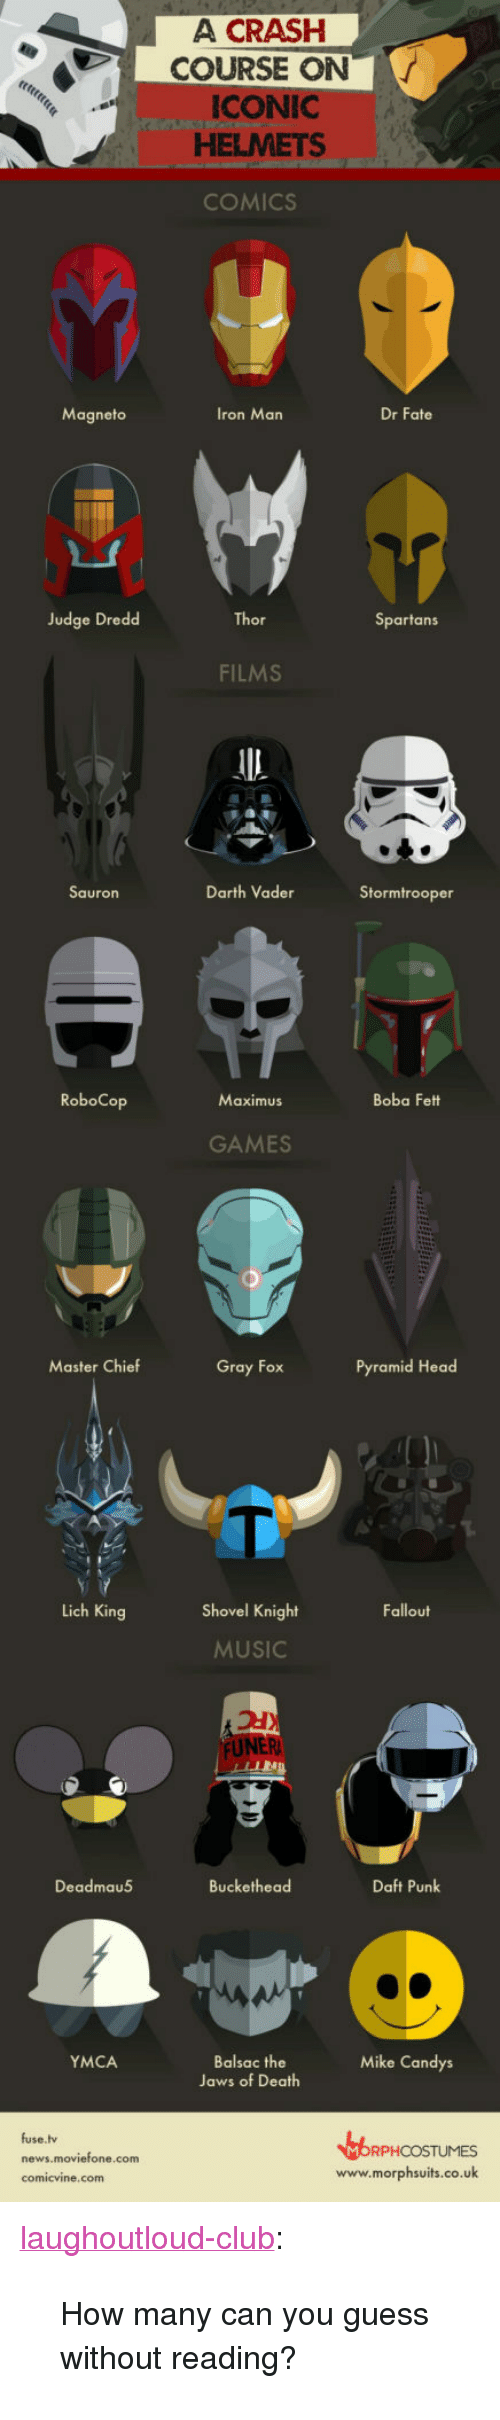 """Club, Darth Vader, and Head: A CRASH  COURSE ON  CONIC  HELMETS  COMICS  Magneto  Iron Man  Dr Fate  Judge Dreded  Thor  Spartans  FILMS  Darth Vader  Stormtrooper  Sauron  RoboCop  Boba Fett  Maximus  GAMES  Master Chief  Gray Fox  Pyramid Head  Lich King  Shovel Knight  Fallout  MUSIC  Deadmau5  Buckethead  Daft Punk  YMCA  Balsac the  Jaws of Death  Mike Candys  fuse.lv  RPHCOSTUMES  www.morphsuits.co.uk  news.moviefone.com <p><a href=""""http://laughoutloud-club.tumblr.com/post/161202160341/how-many-can-you-guess-without-reading"""" class=""""tumblr_blog"""">laughoutloud-club</a>:</p>  <blockquote><p>How many can you guess without reading?</p></blockquote>"""